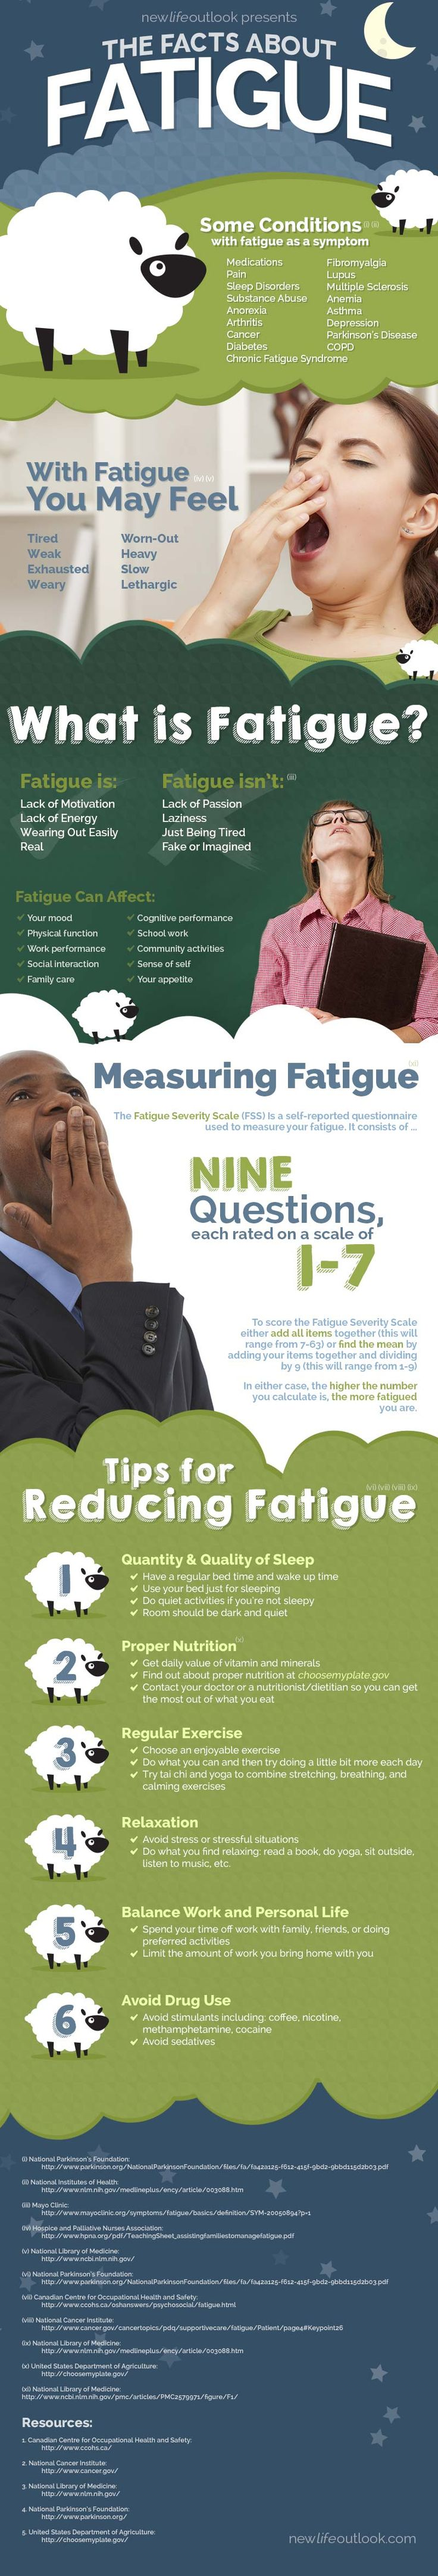 MS Lassitude: A few types of fatigue are associated with MS, including lassitude, which is more severe than regular fatigue. Try these tips for coping.